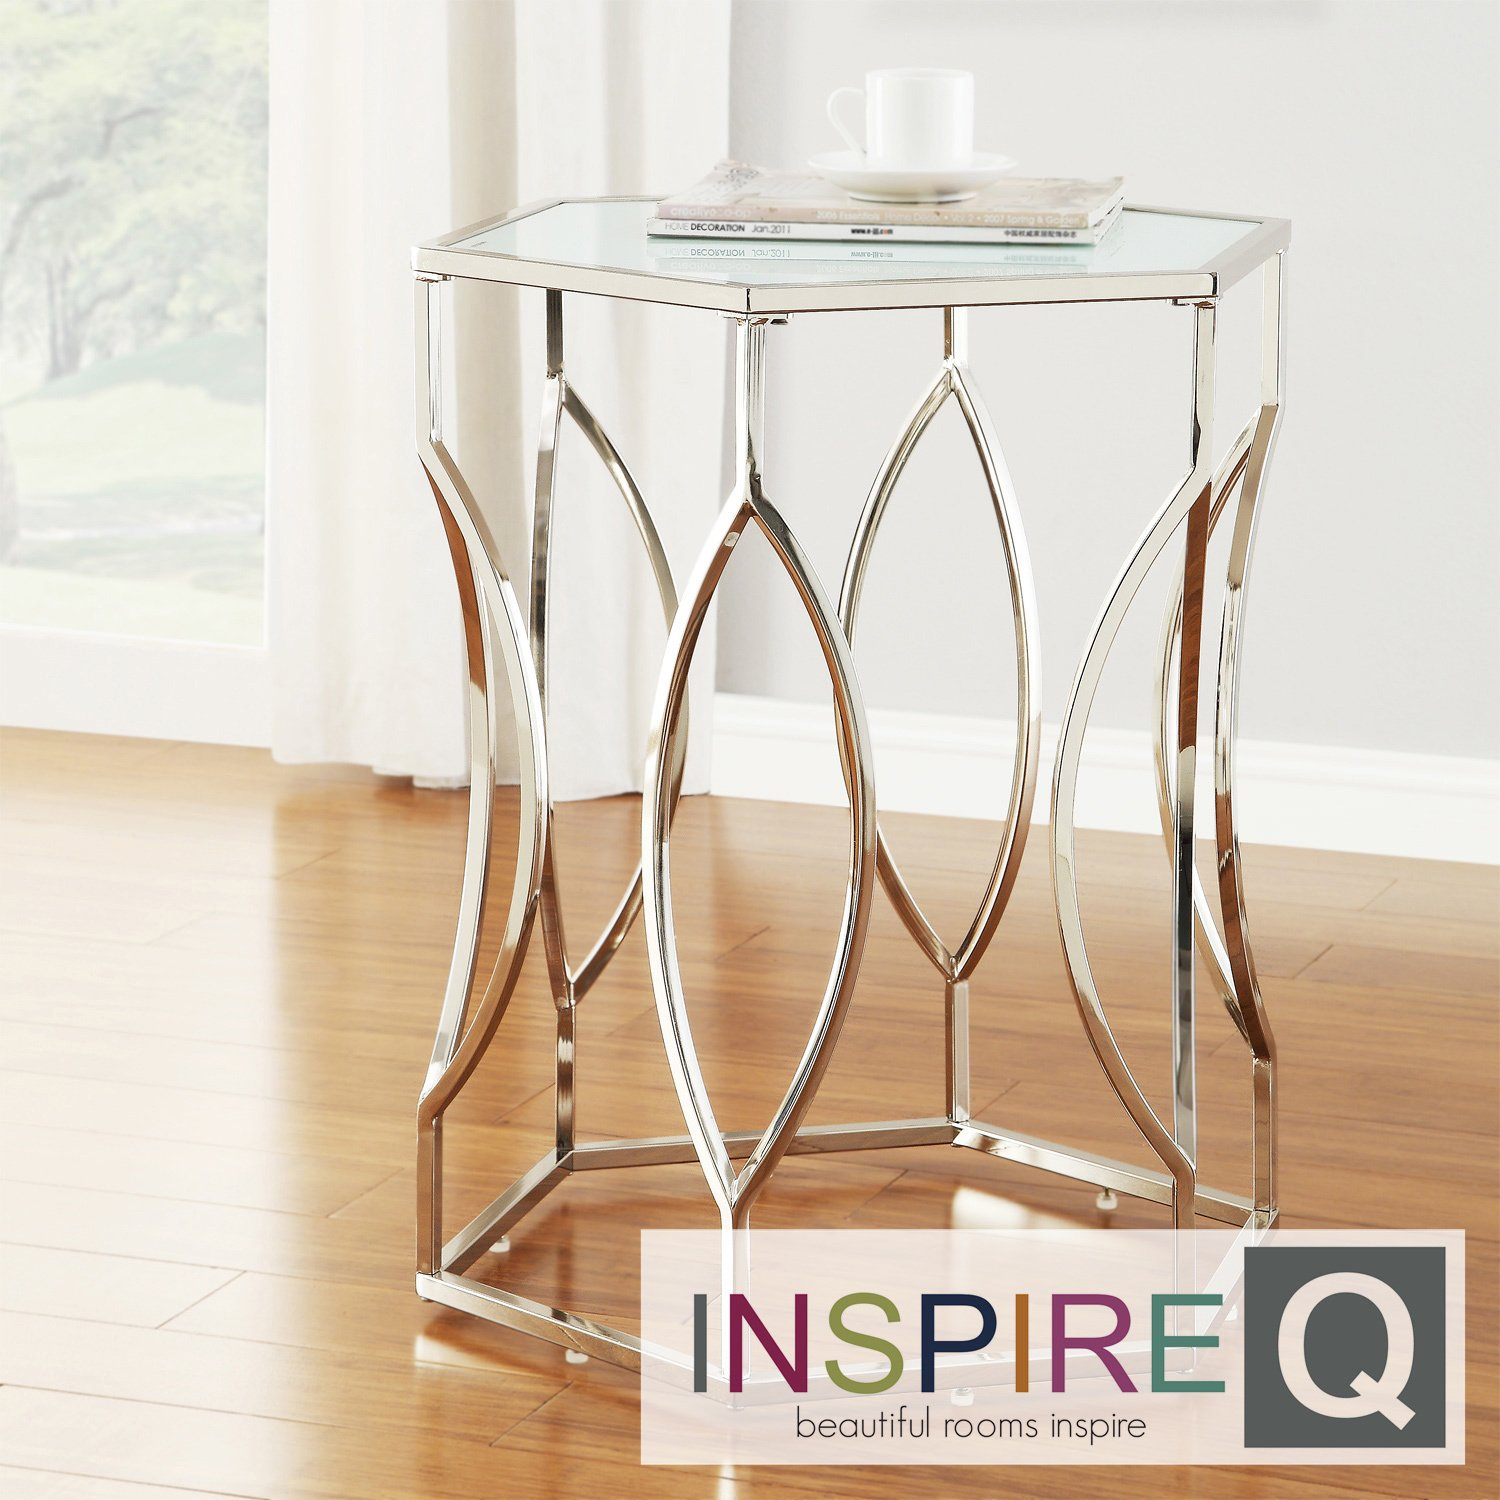 metro inspire davlin hexagonal metal accent table glass kona contemporary chrome hexagon kitchen dining small cherry wood silver round lamp ashley furniture nesting tables mirror